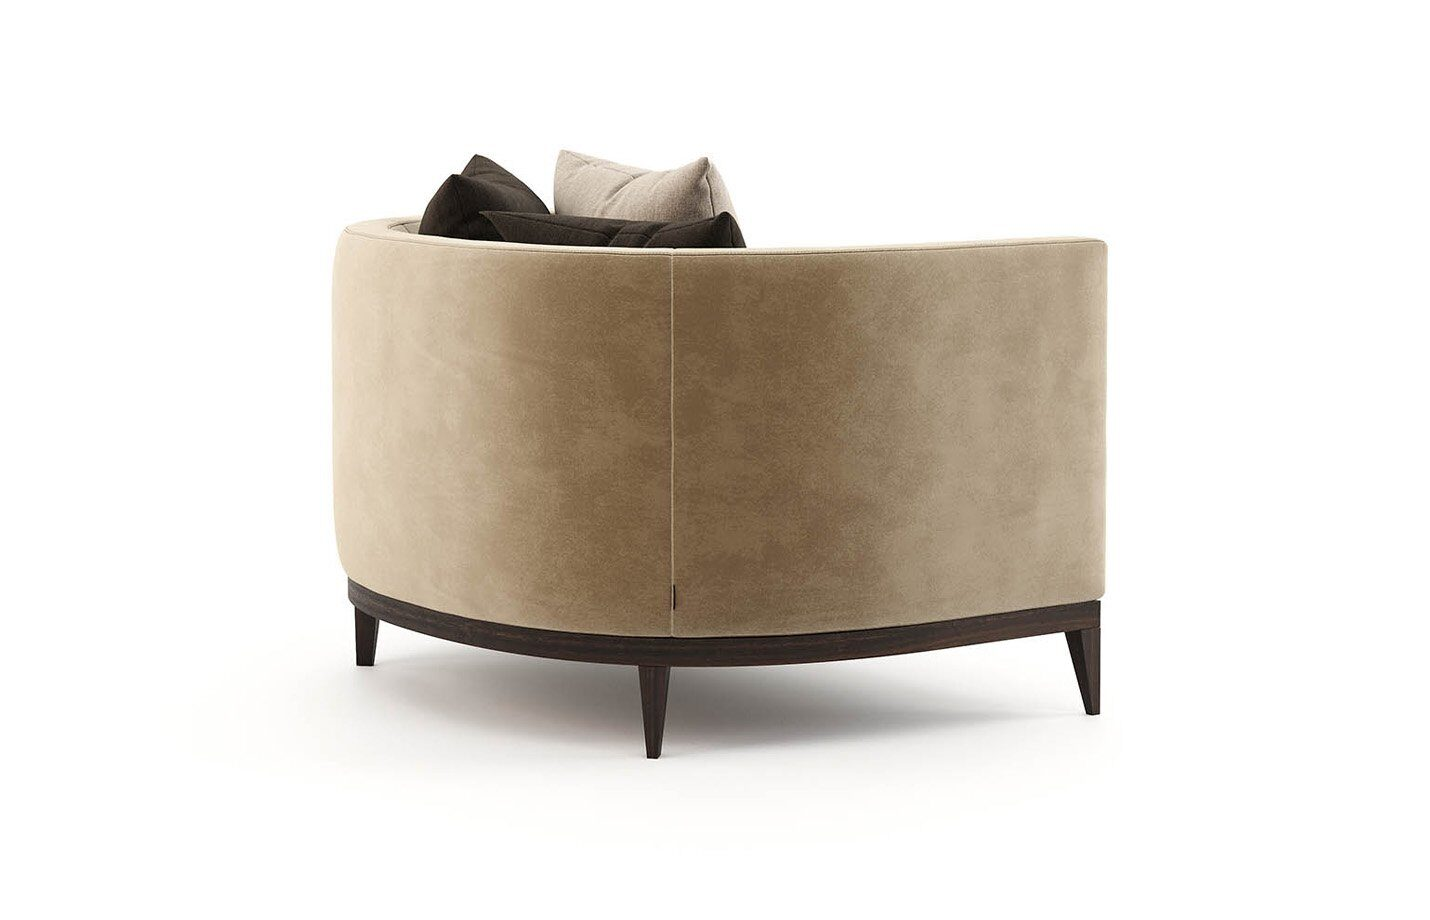 Medwin-Upholstery-single-Seater-Sofa-04